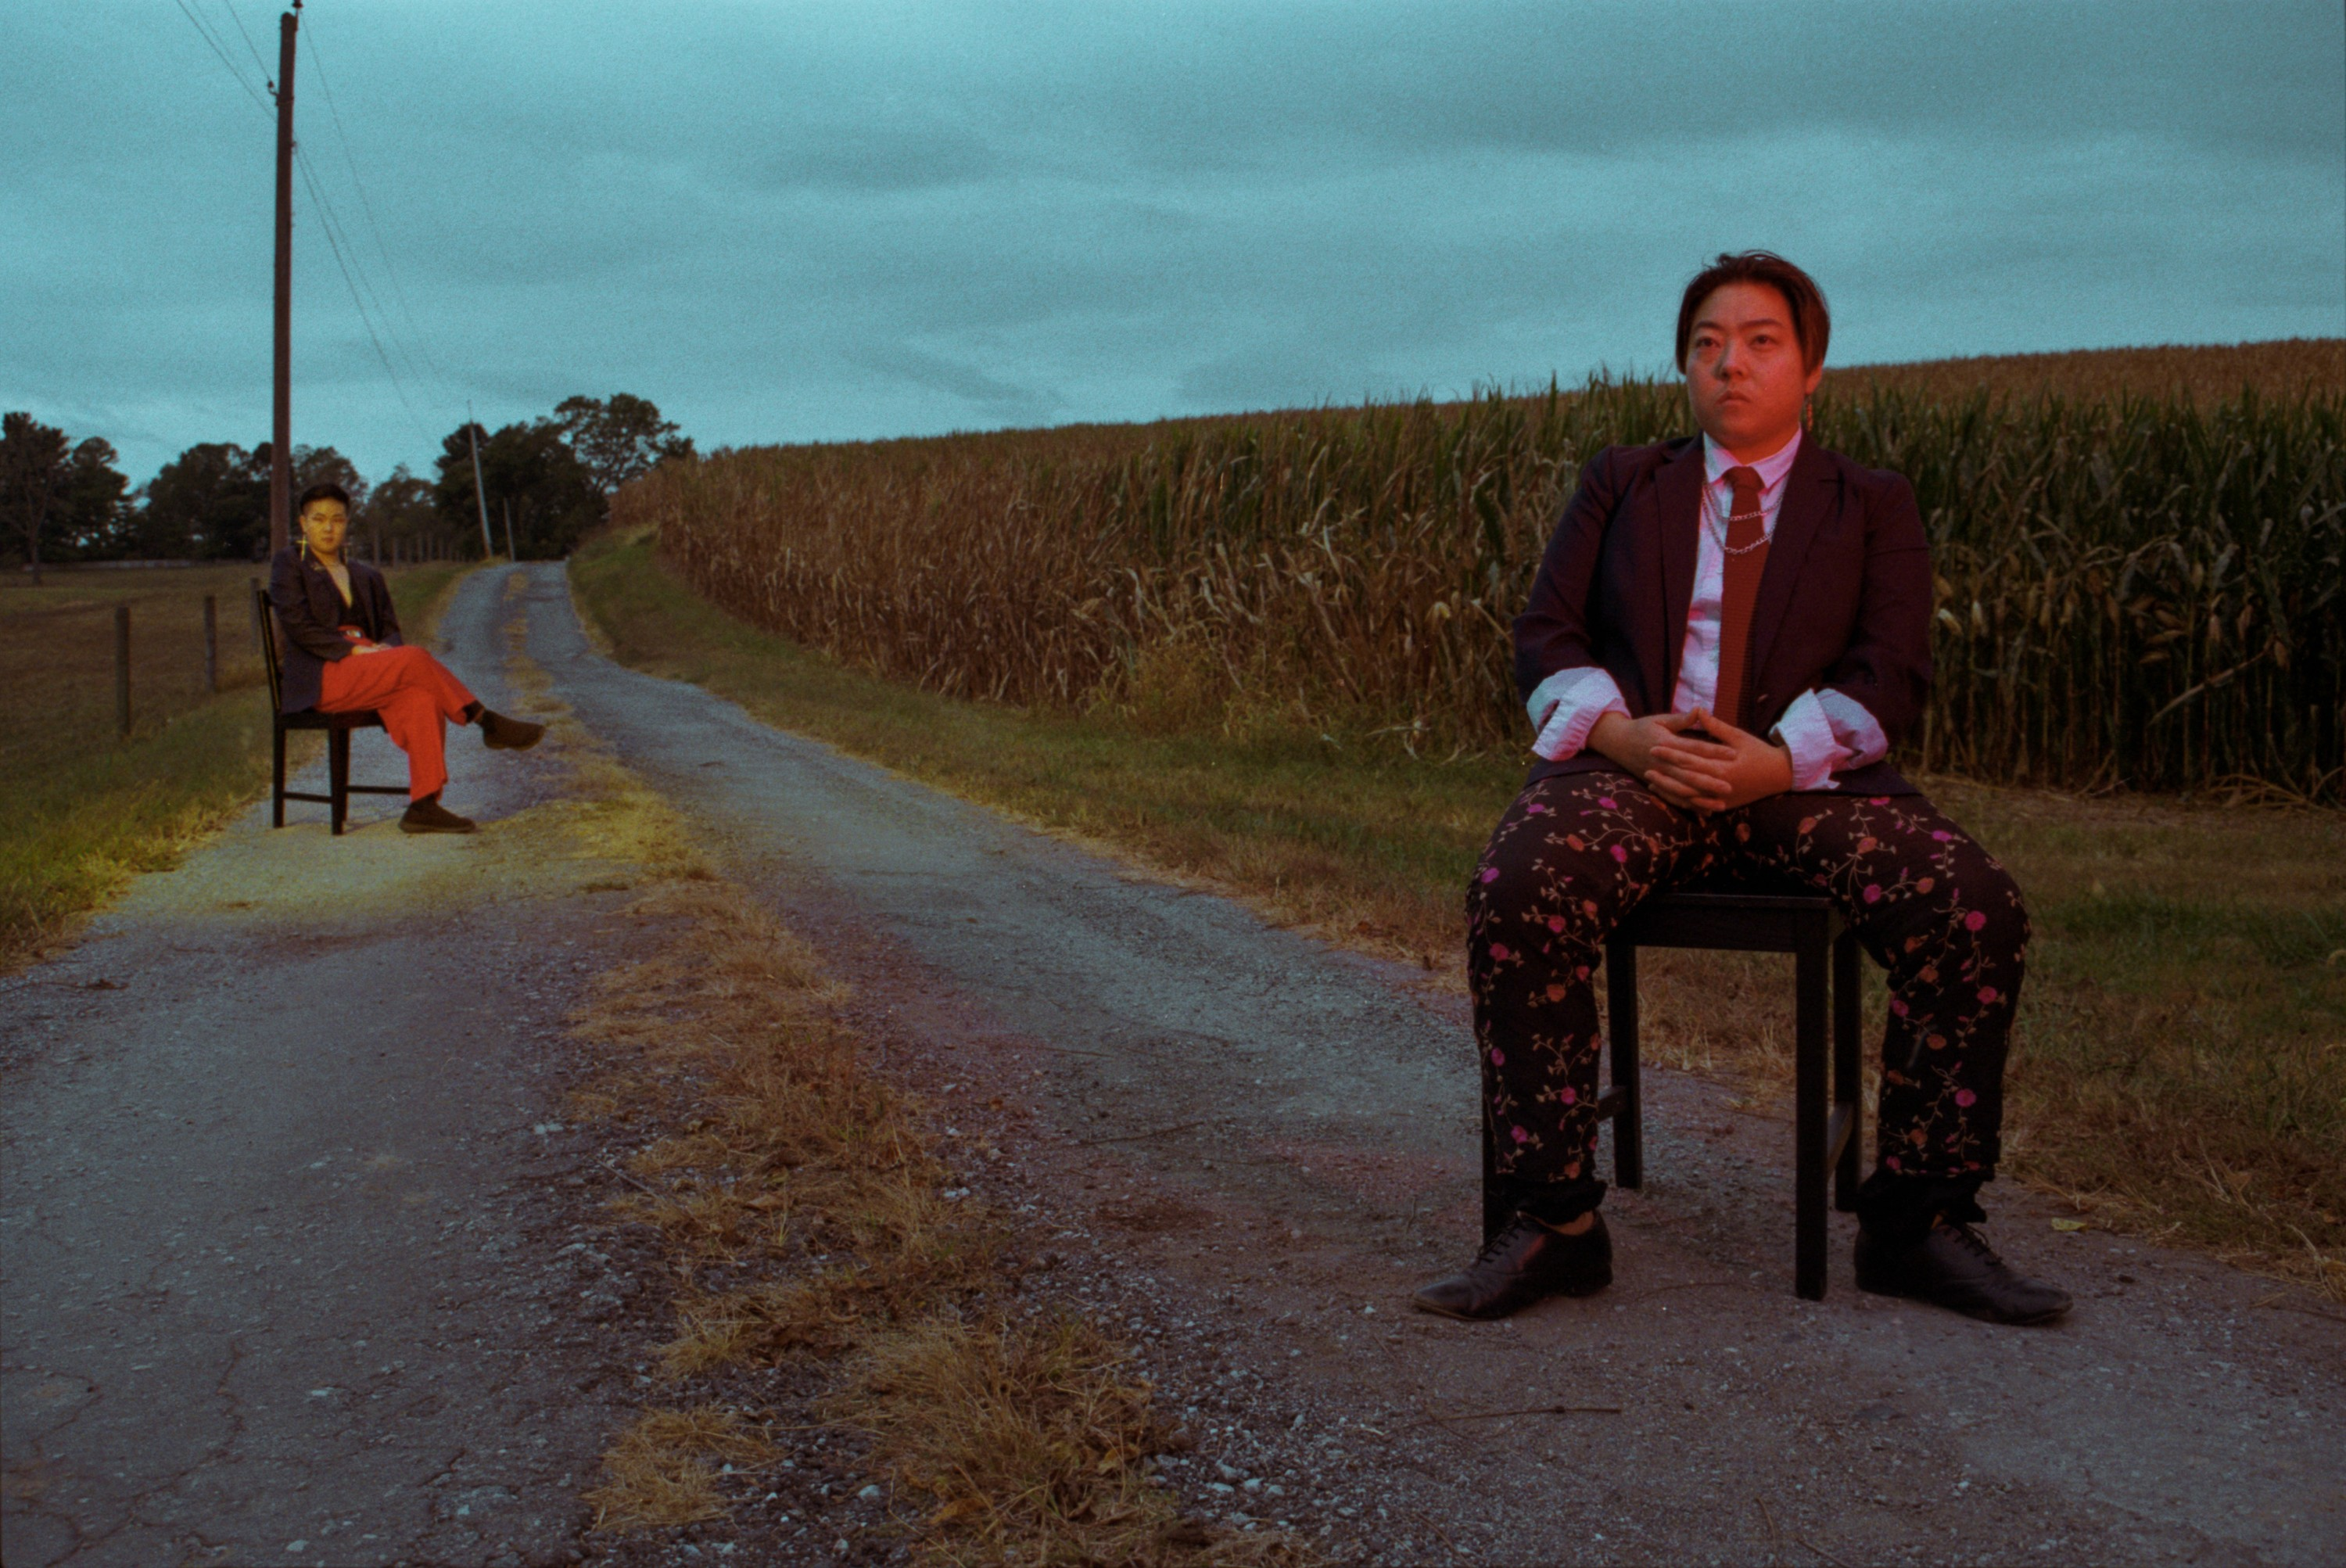 Two people sitting on chairs on a road